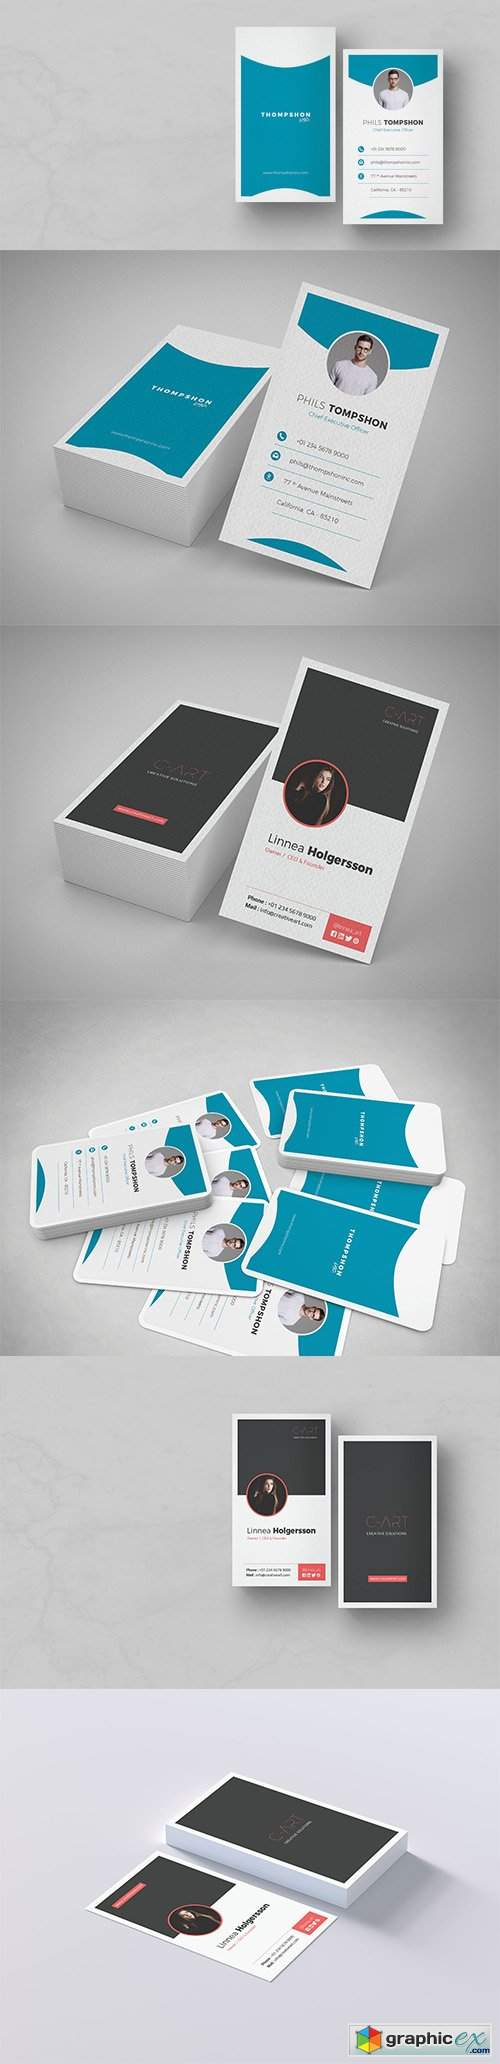 CodeSter - Professional Business Card Vol 02